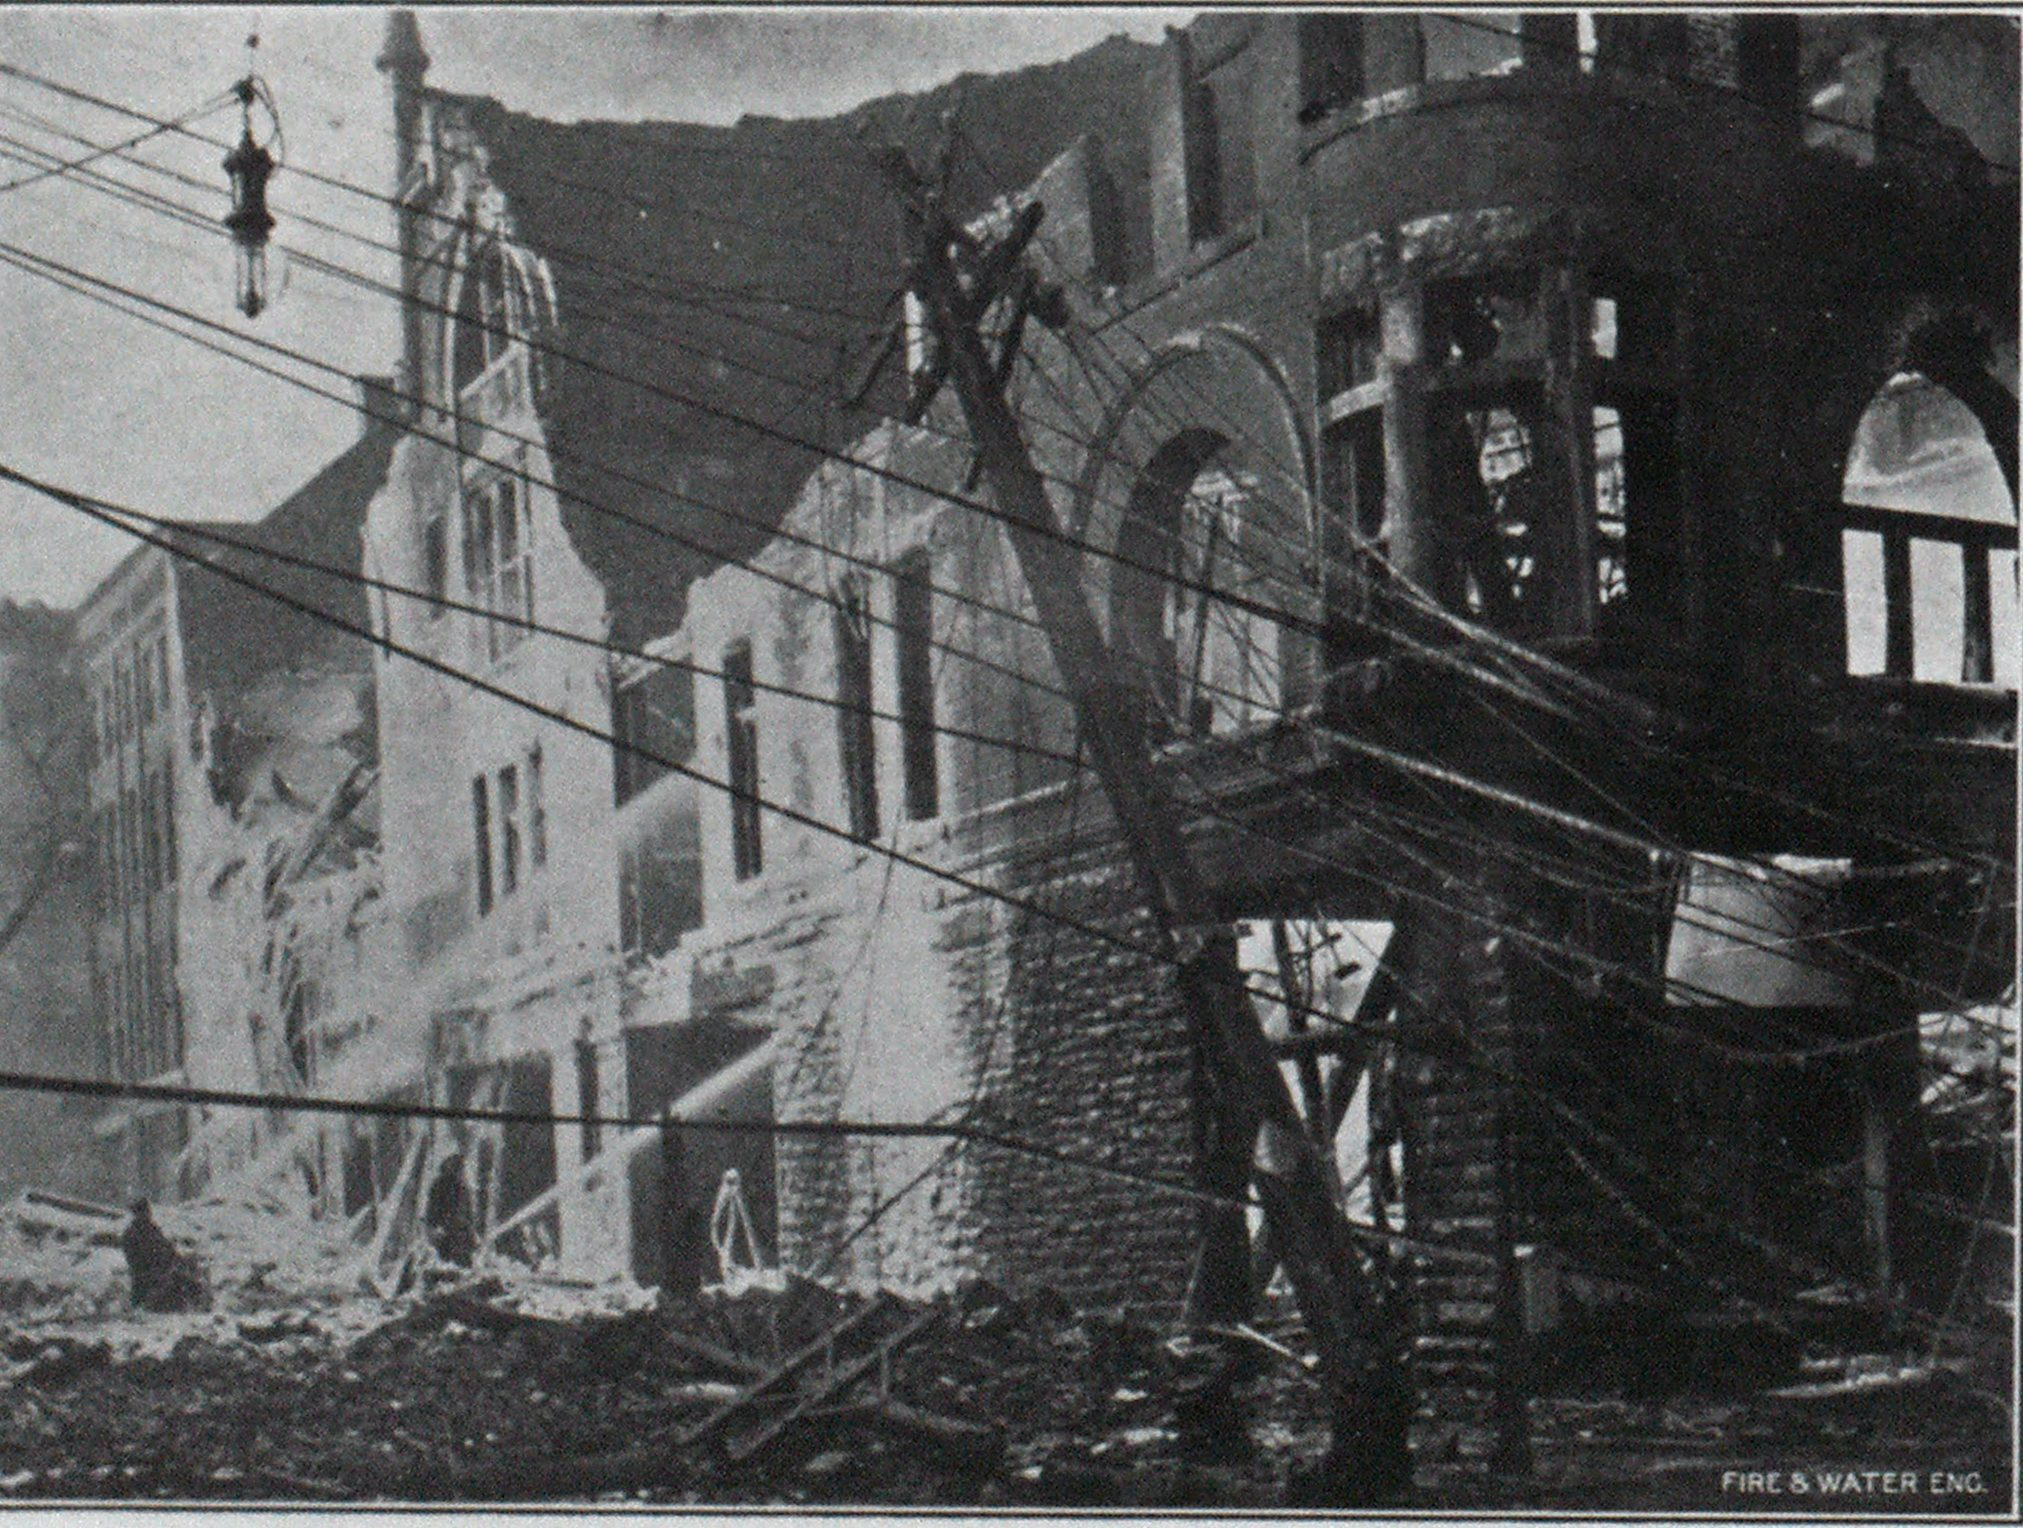 All that Remained of the Y. M. C. A Building, After the Fire in Utica, N. Y.